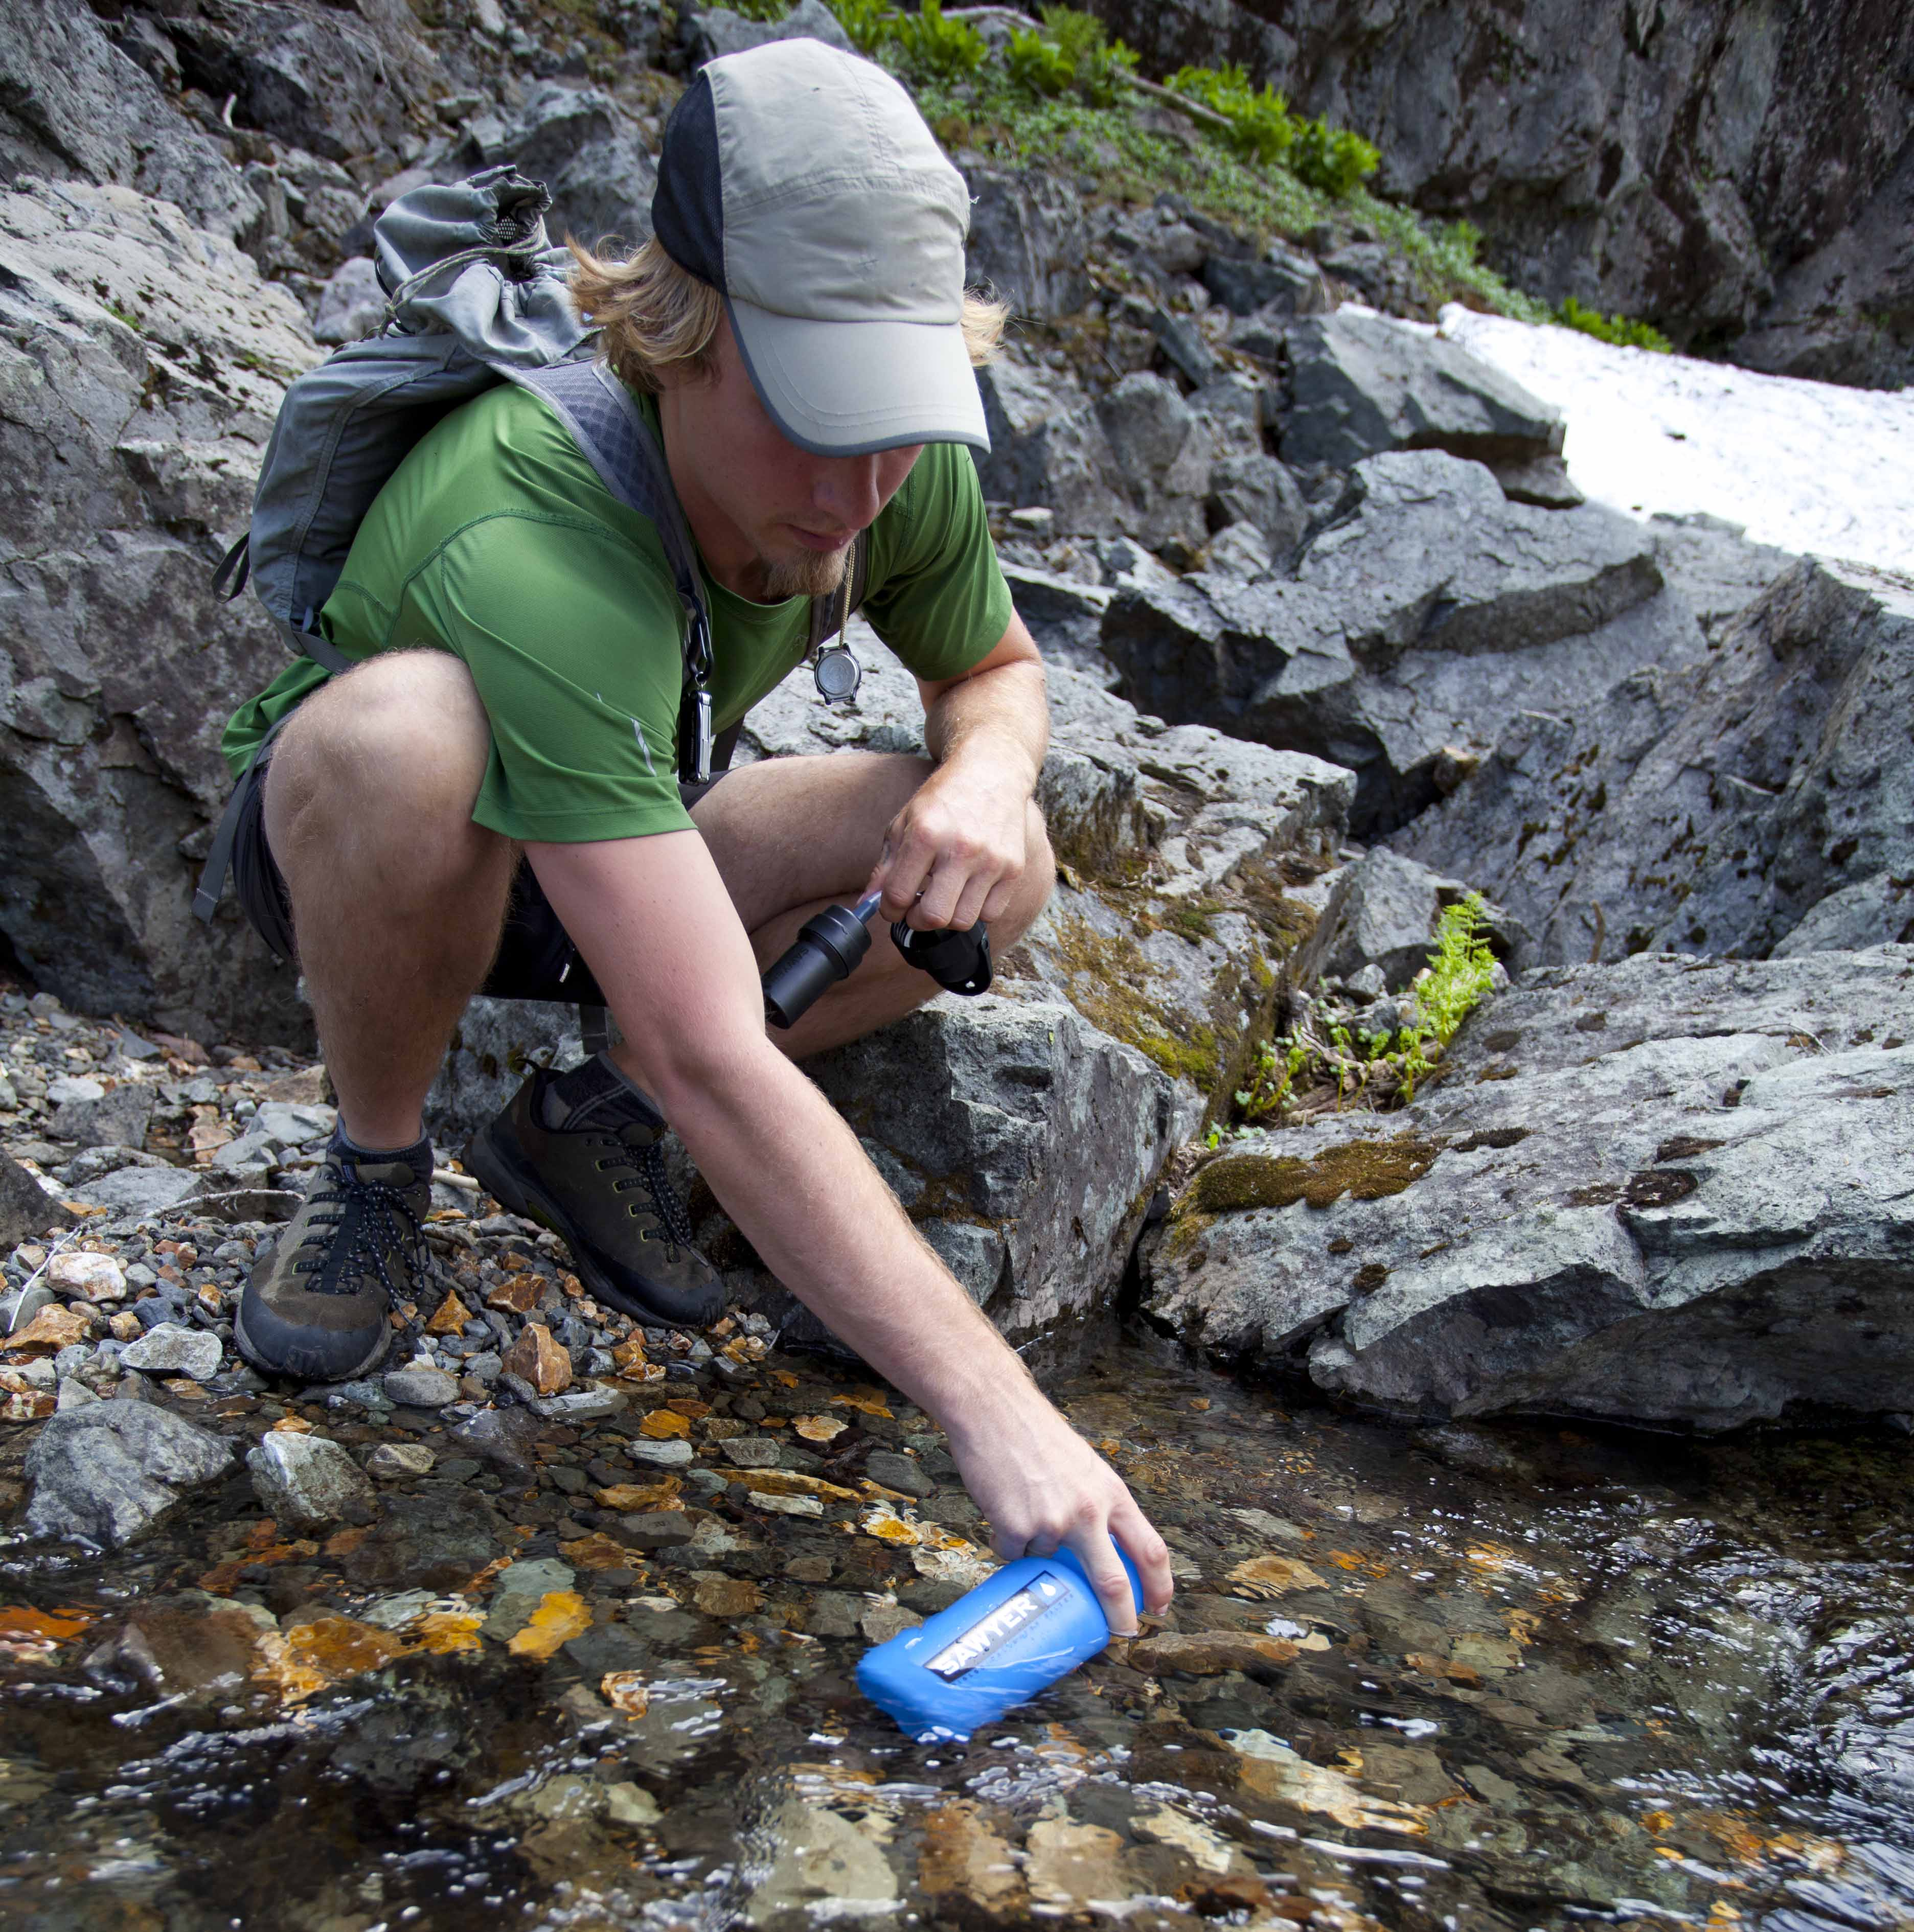 Gentleman Filling his Sawyer Personal Water Filtration Bottle in a Stream